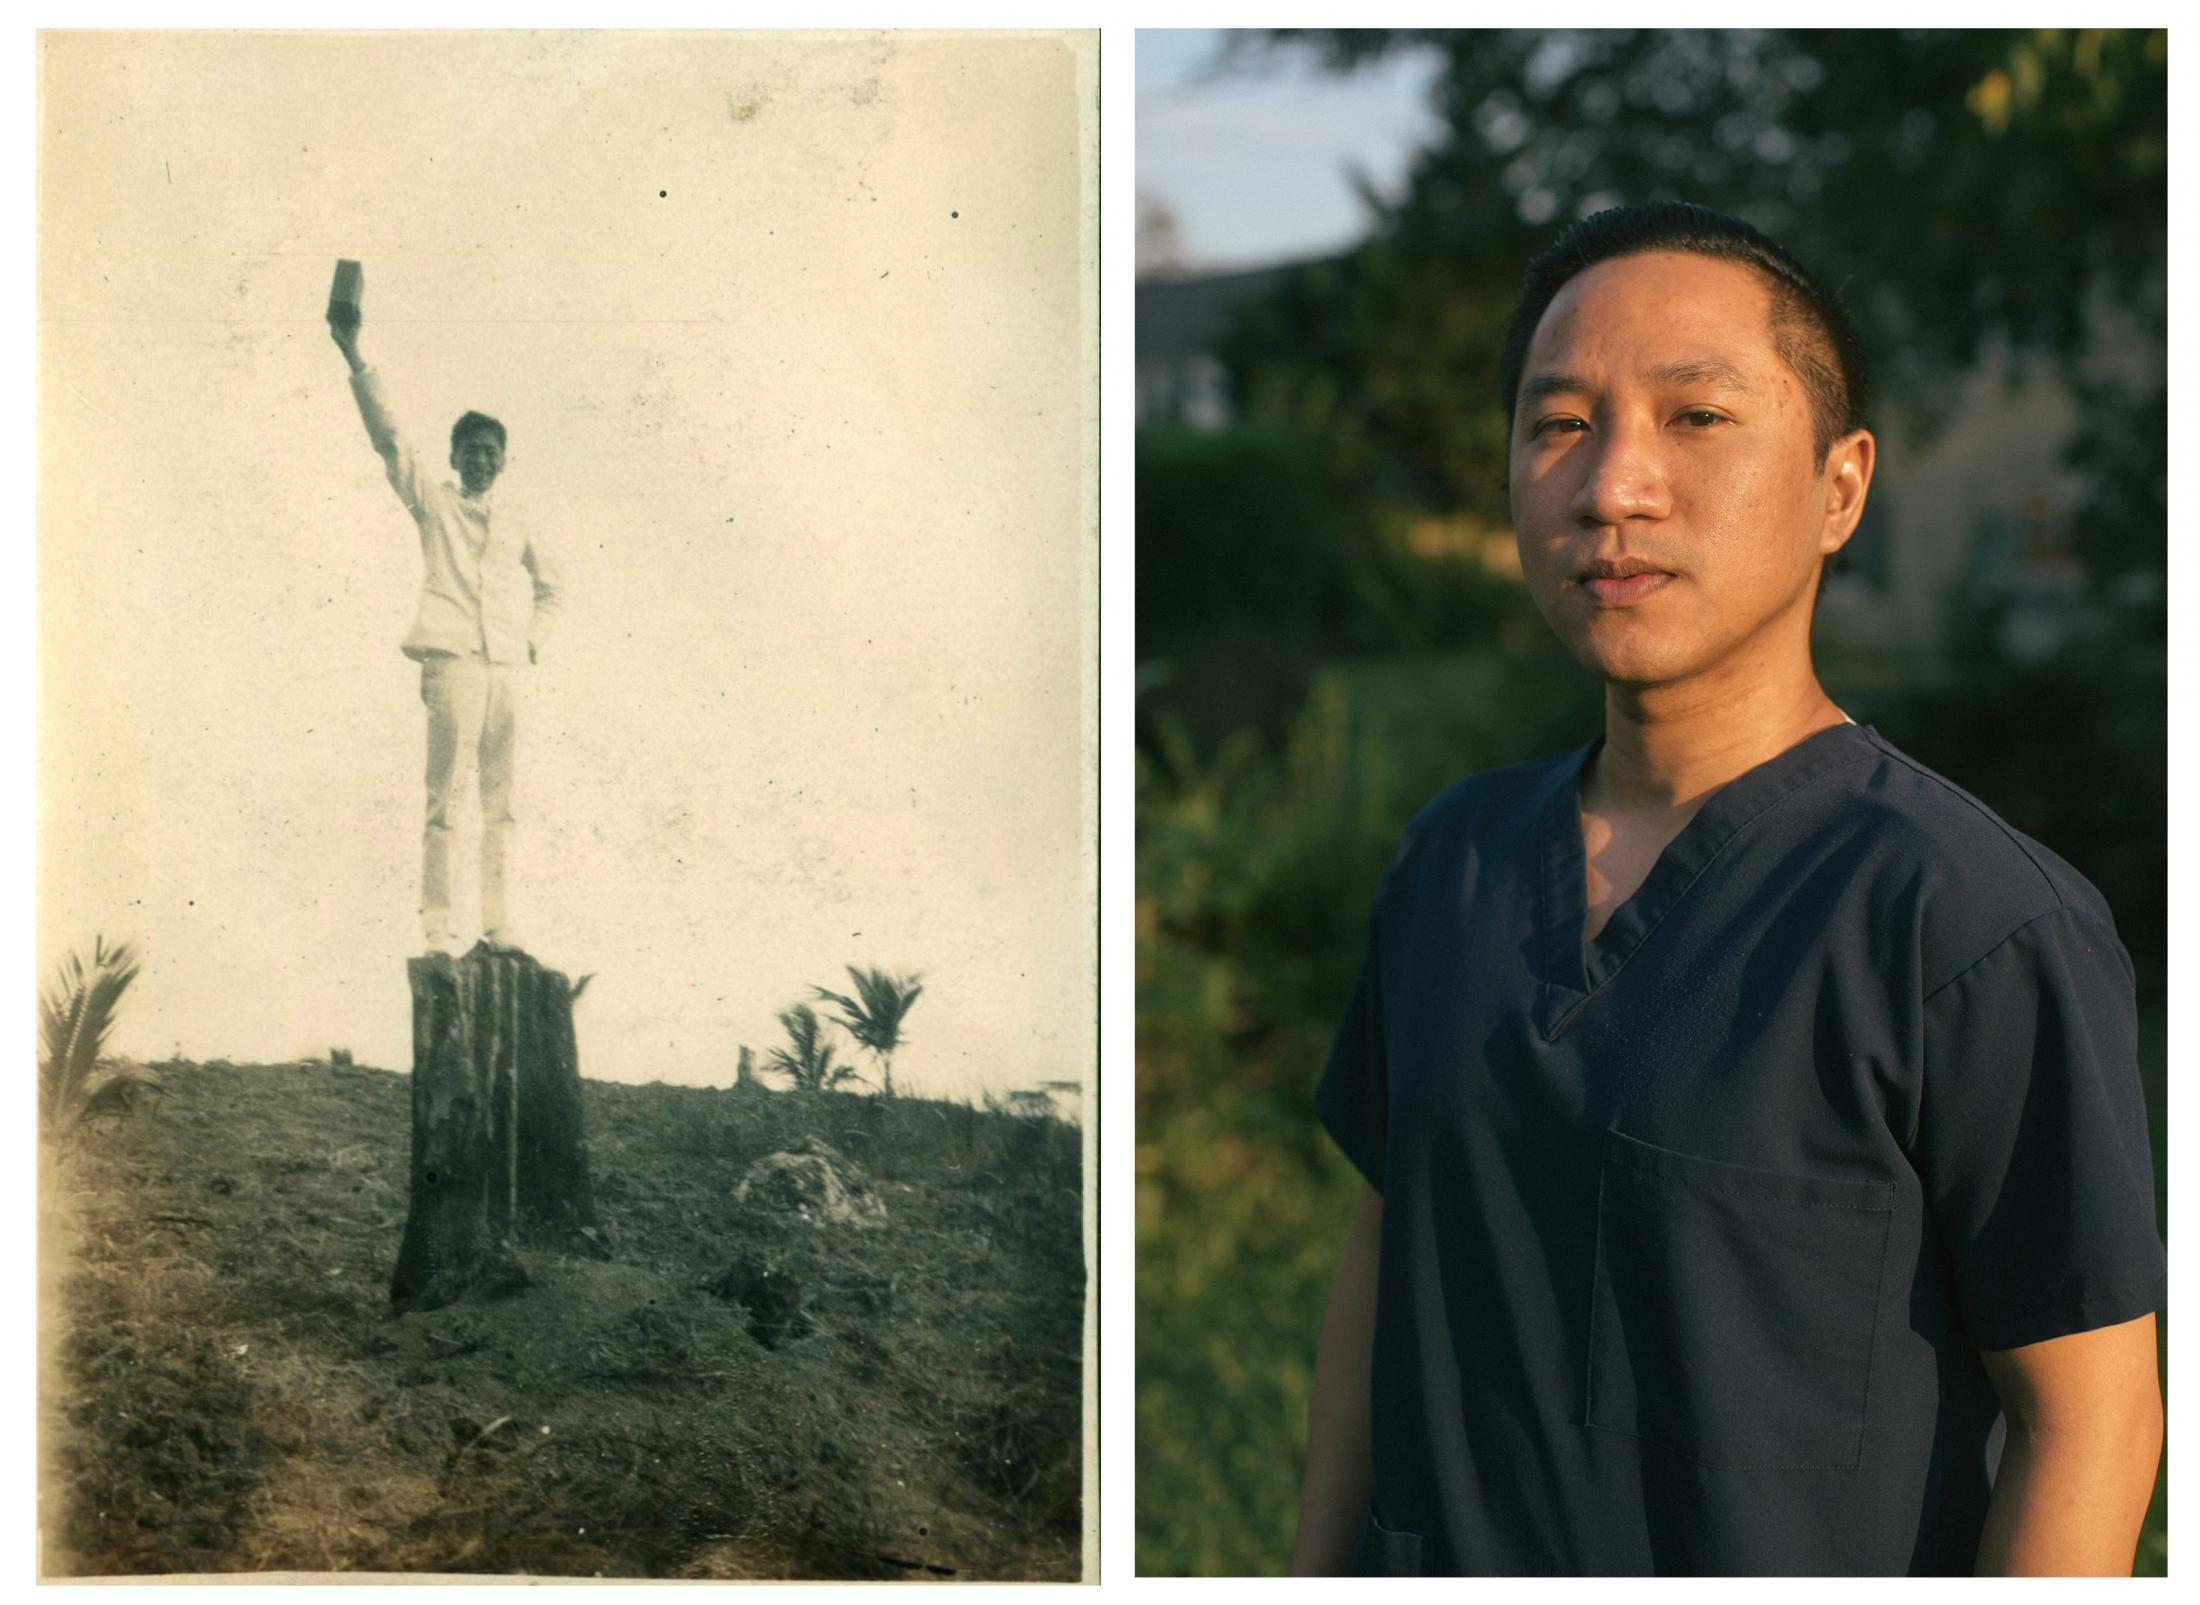 """Left: A Filipino nursing student poses at San Ramon heights in Mindanao, Philippines between 1921 and 1926. Archival Image: Bjoring Center for Nursing Historical Inquiry Right: """"We moved to the United States because it was a good opportunity for our family,"""" says Marc Bontogon, a Filipino telemetry nurse at Doctors Community Medical Center, in Maryland."""